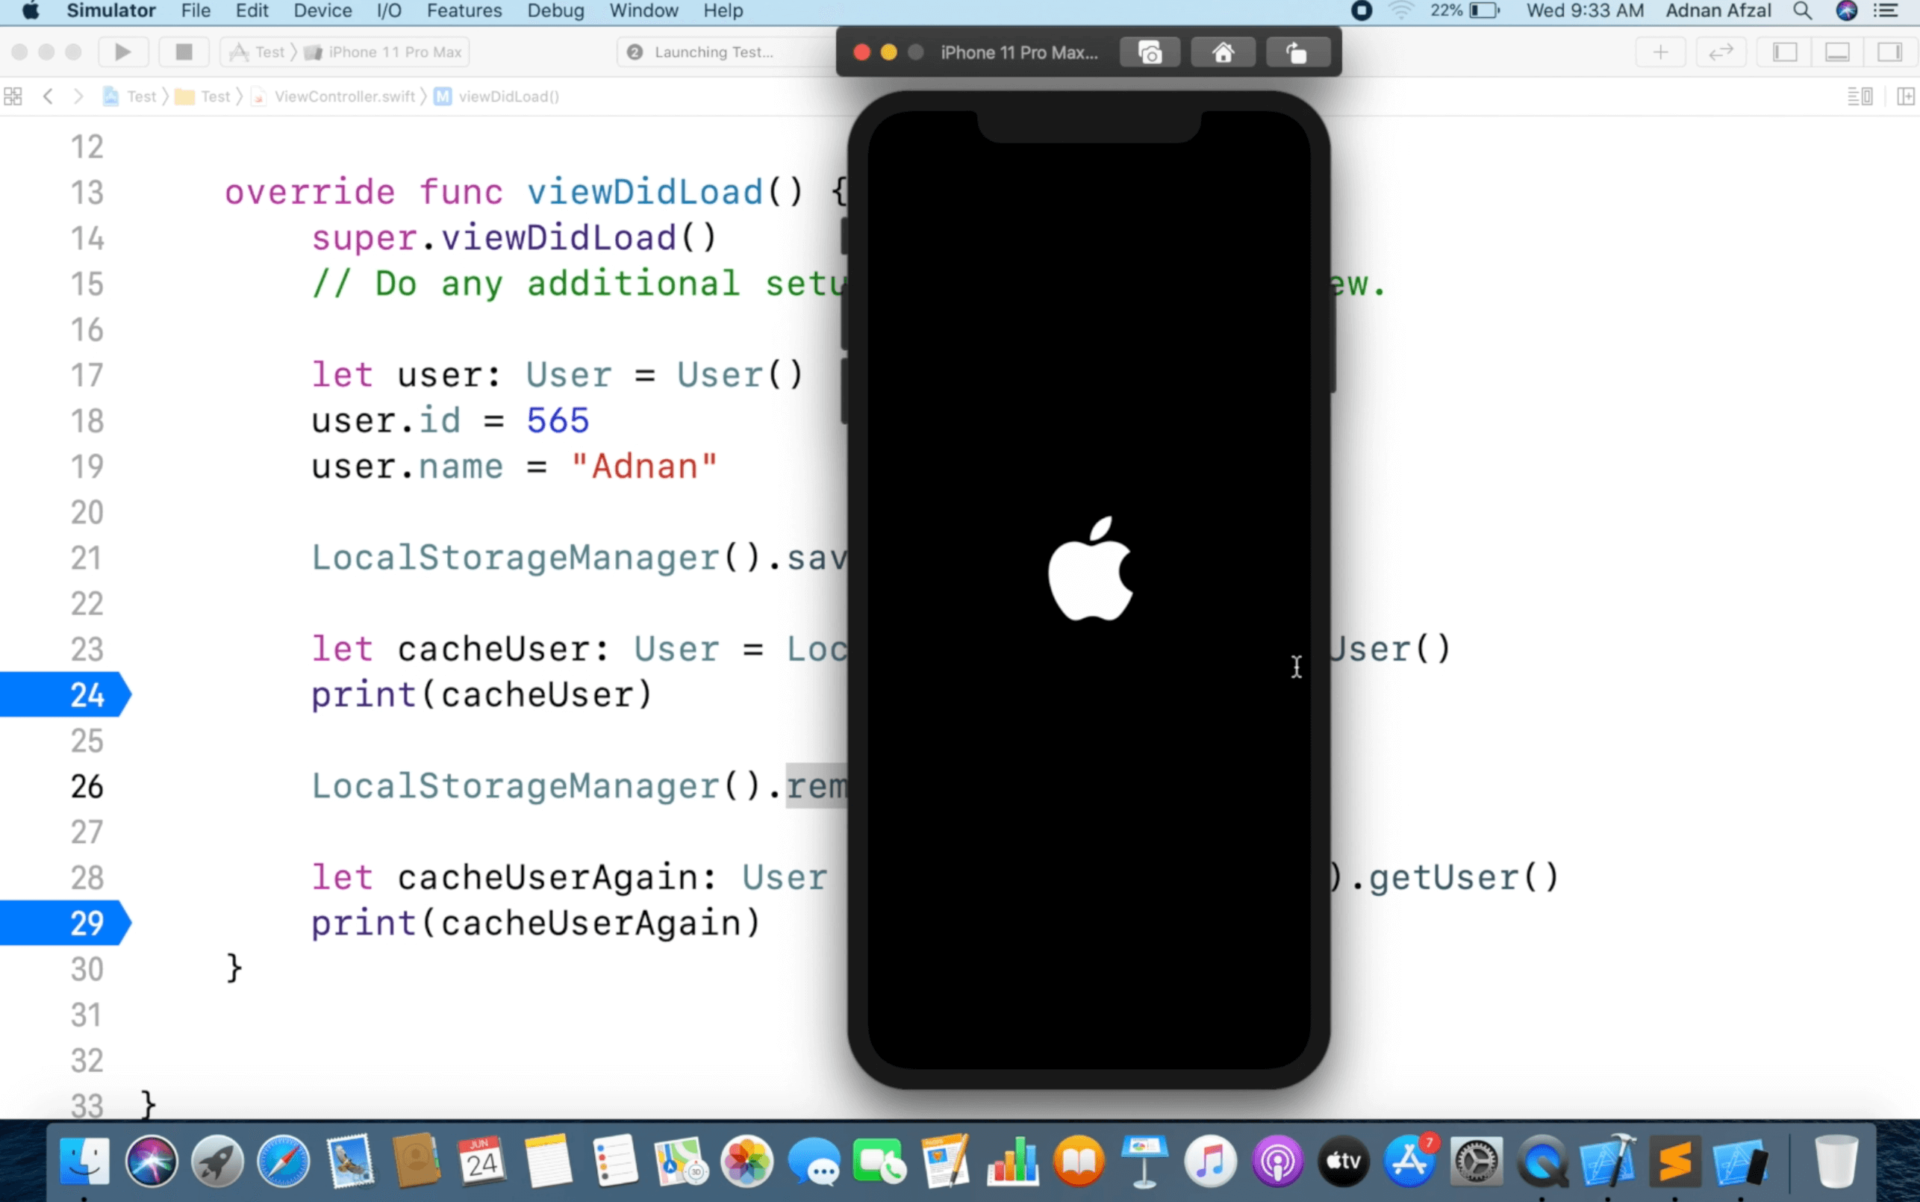 Easy way to save the class object in local storage, user defaults - Swift